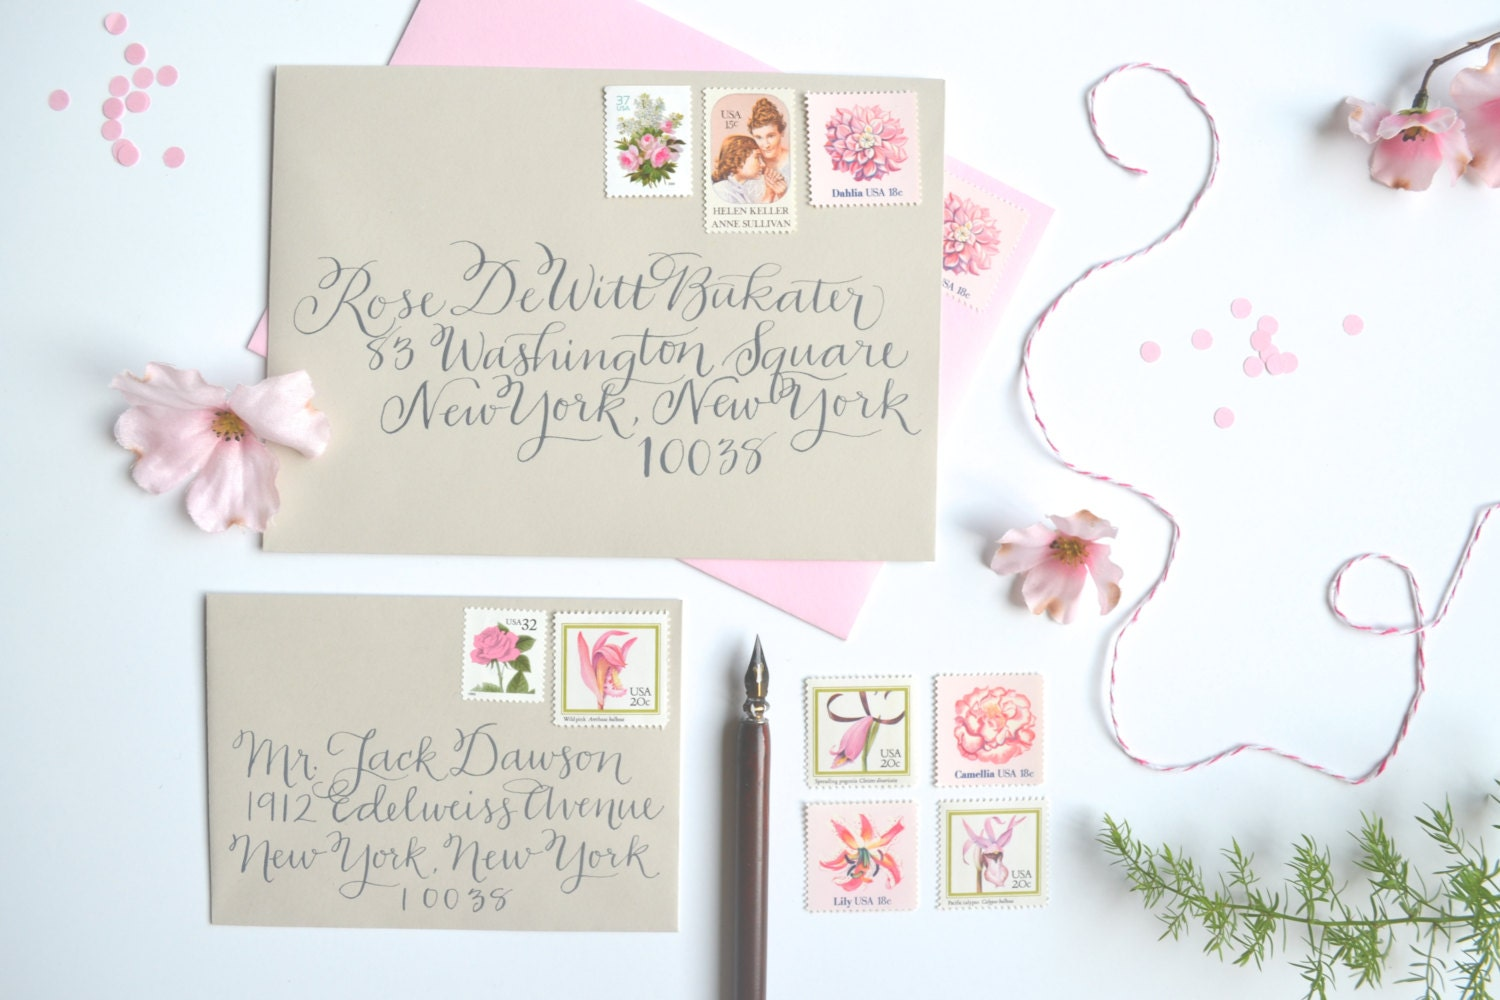 Stamps For Wedding Invitations: Pink Wedding Stamps Vintage Wedding Postage Stamp Pink Flower